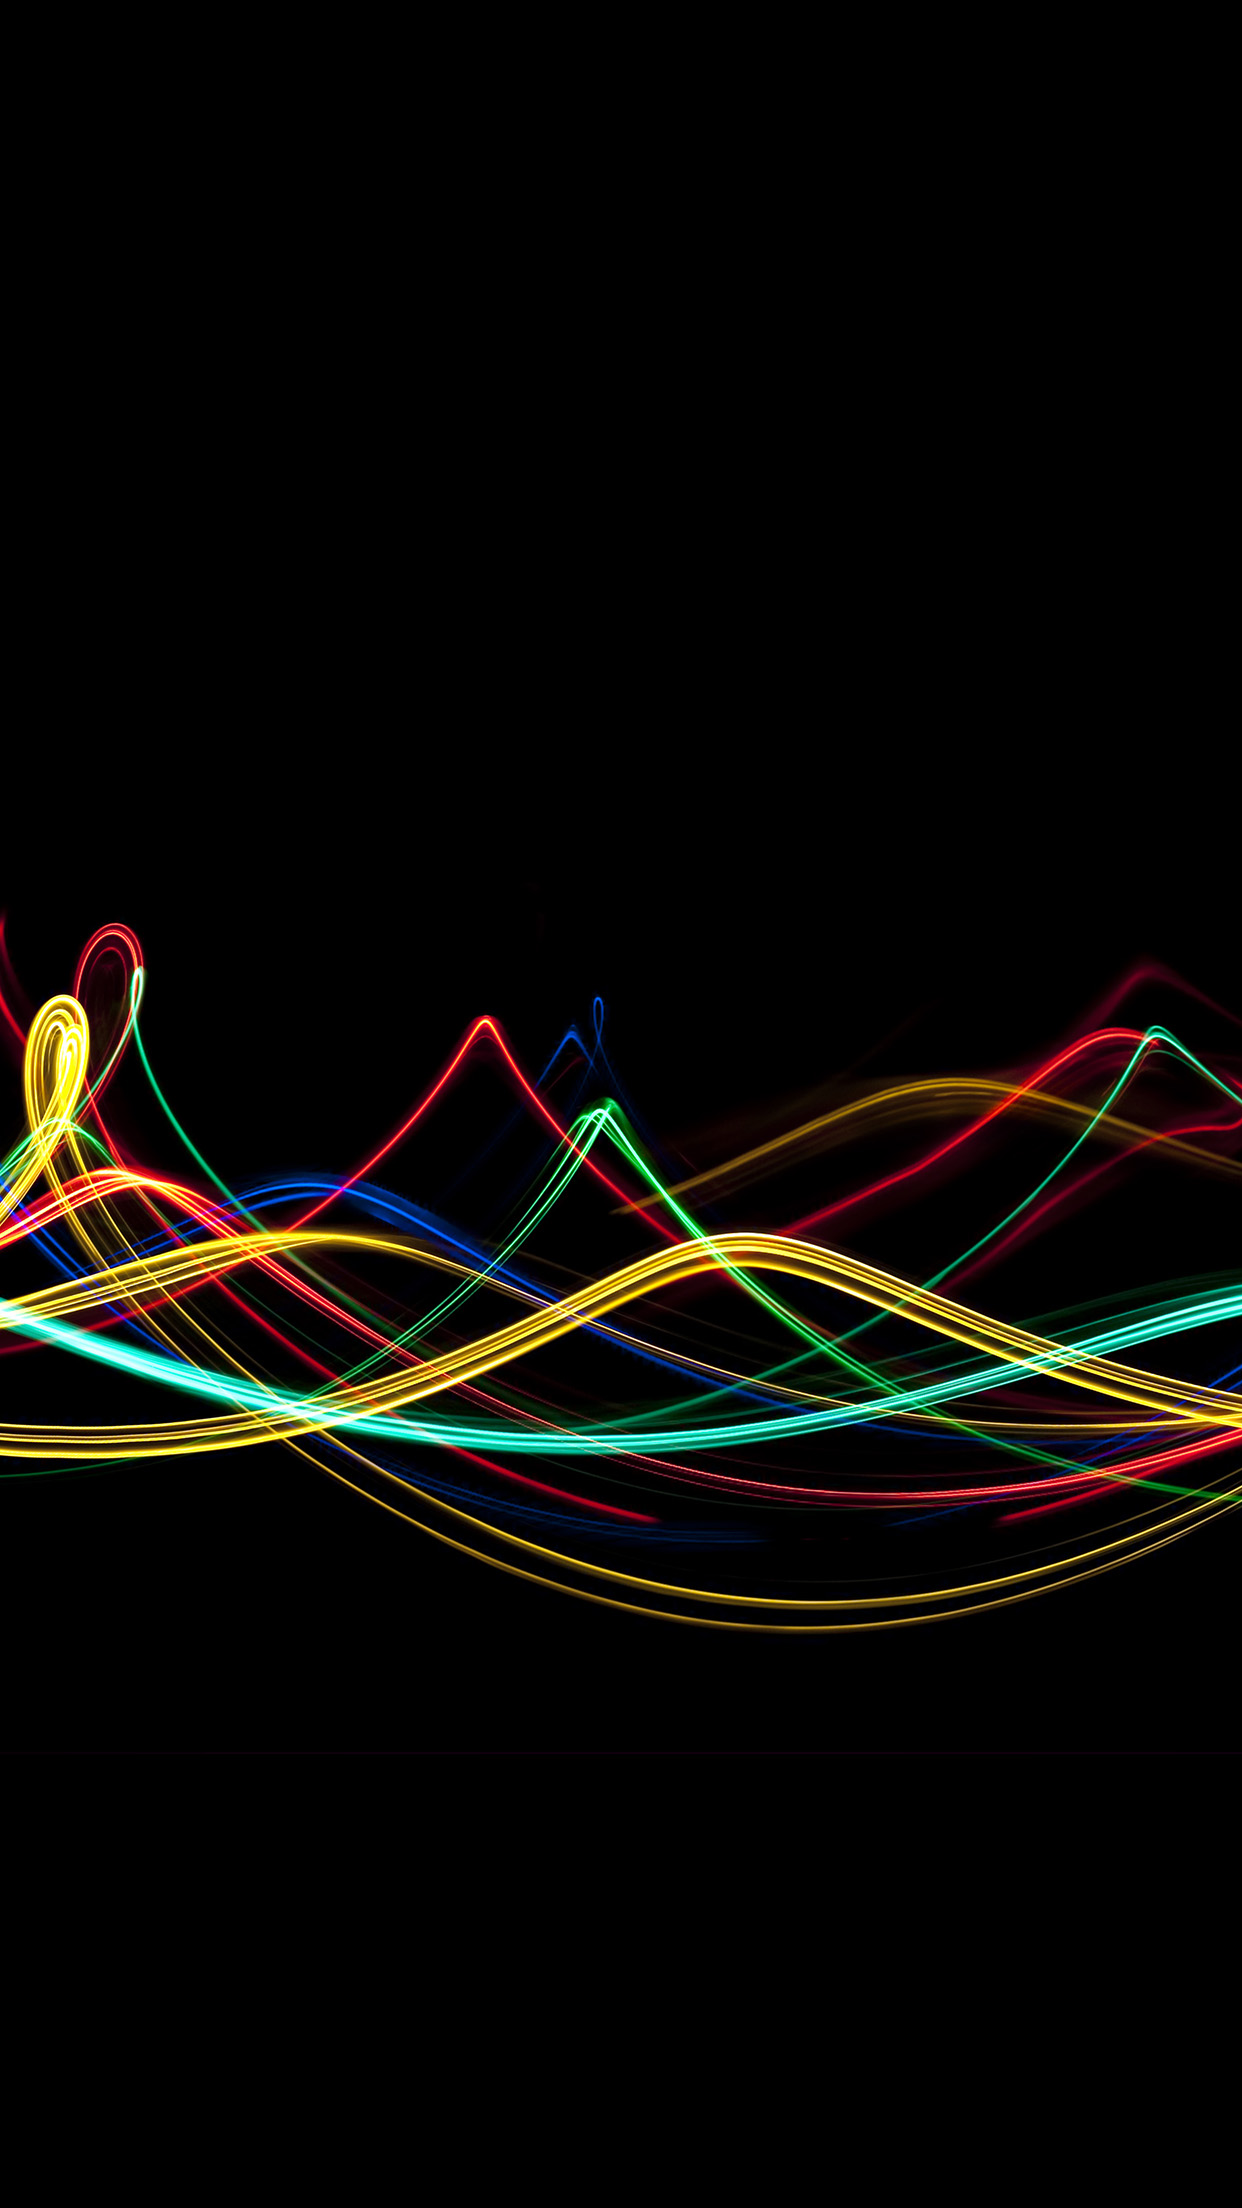 Abstract Curve Lines Rainbow Pattern Android wallpaper